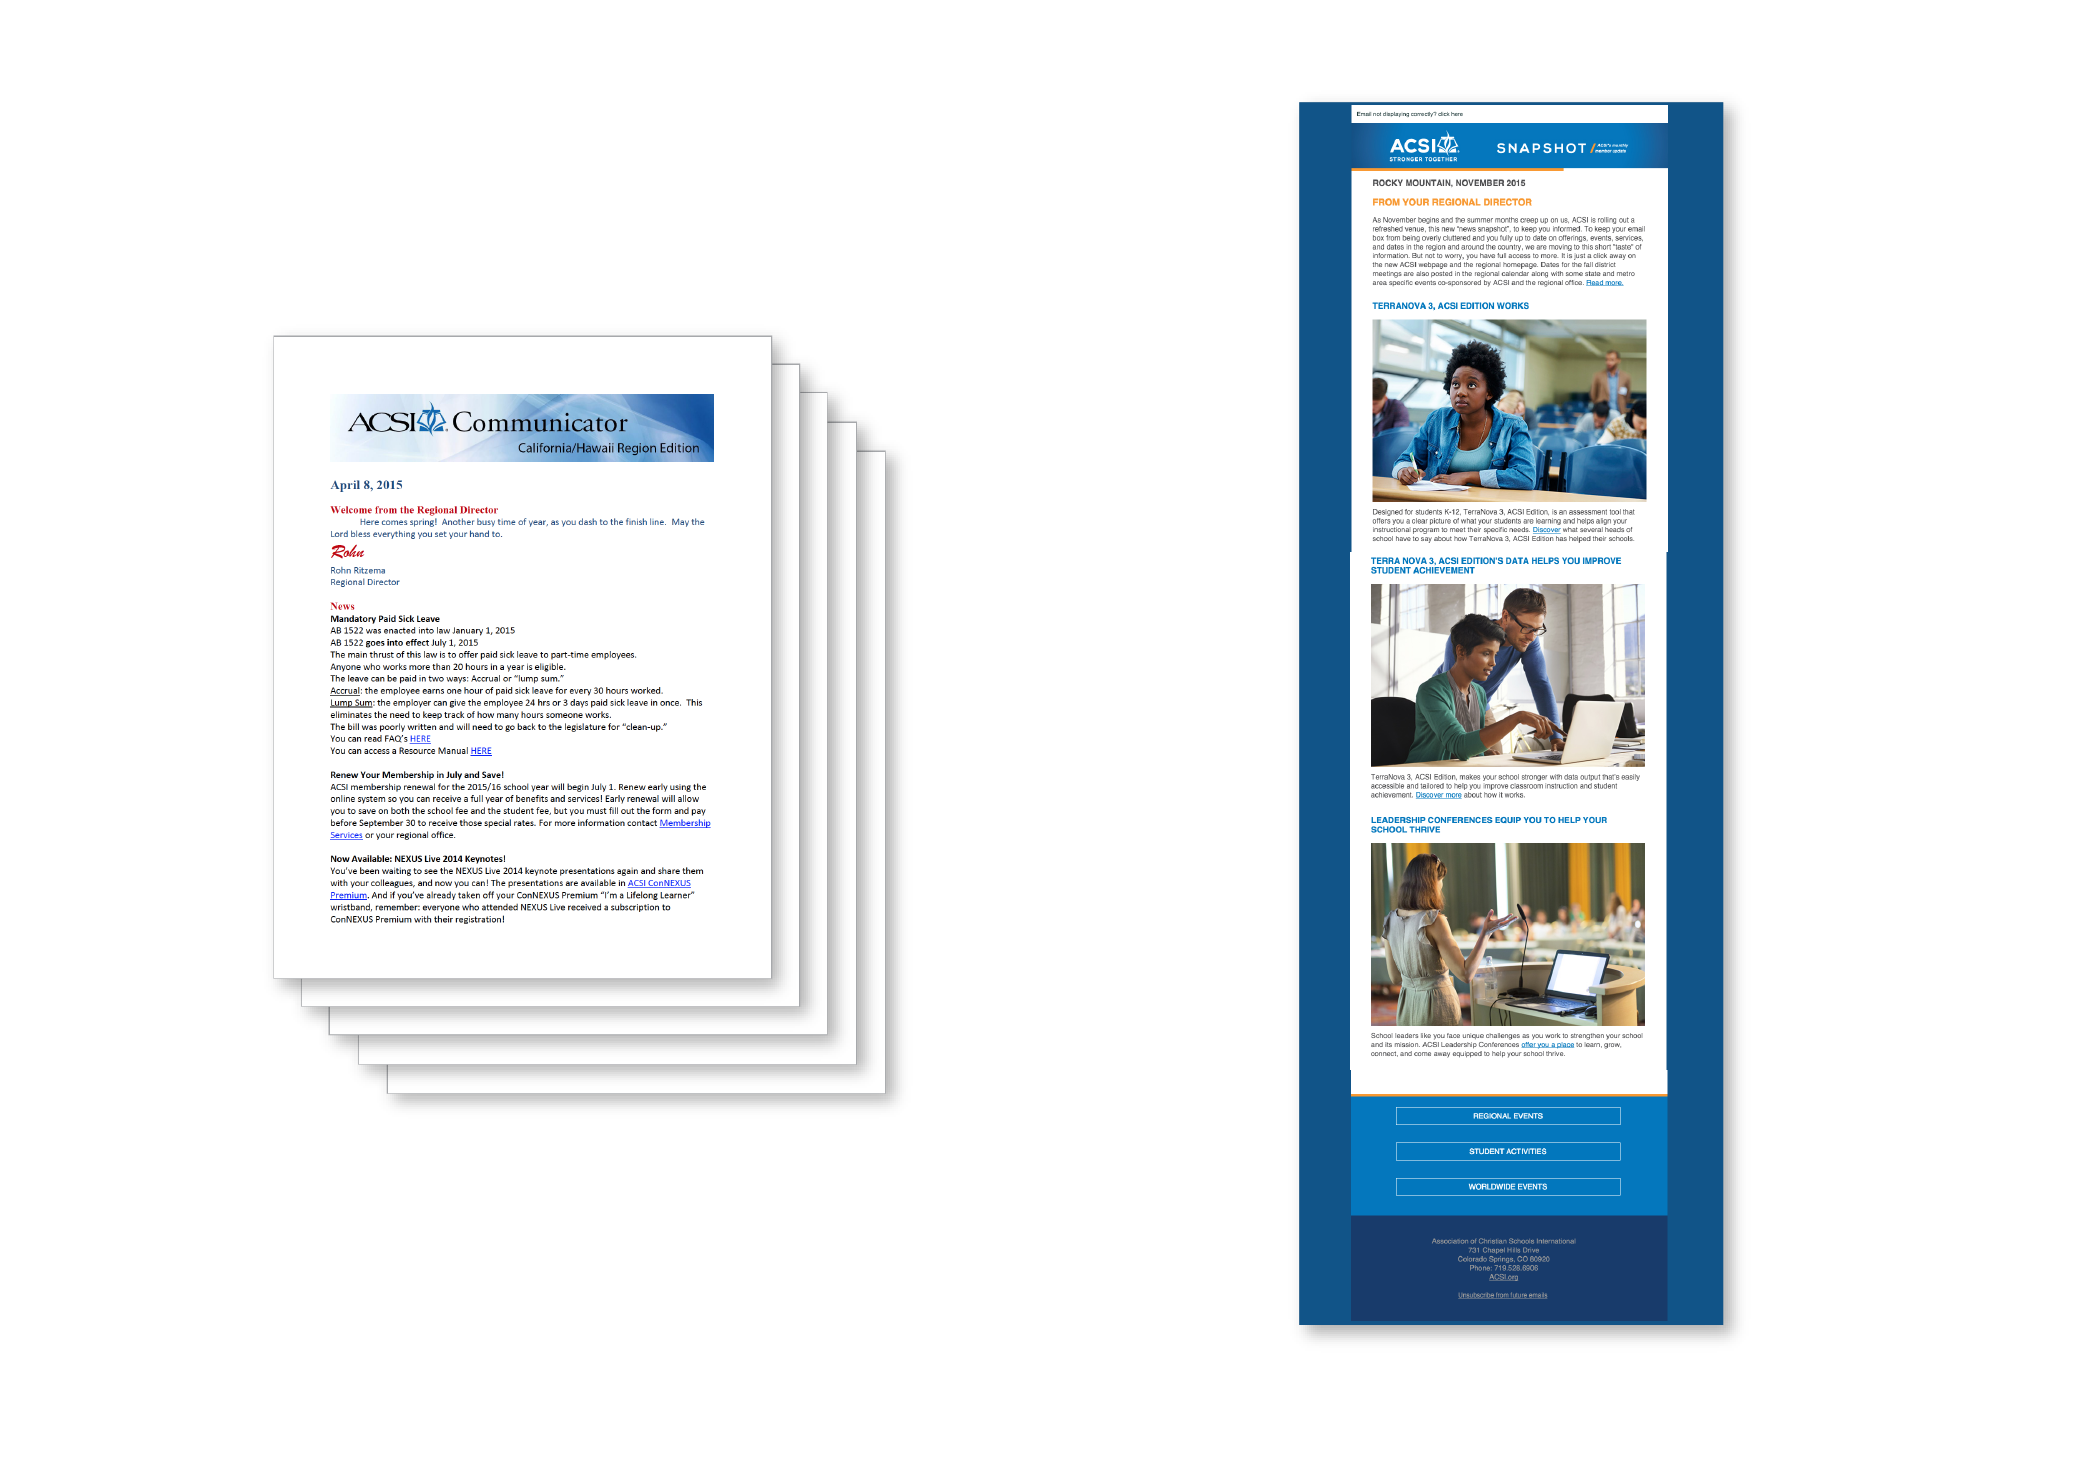 Before and after: ACSI's Communicator, now known as Snapshot